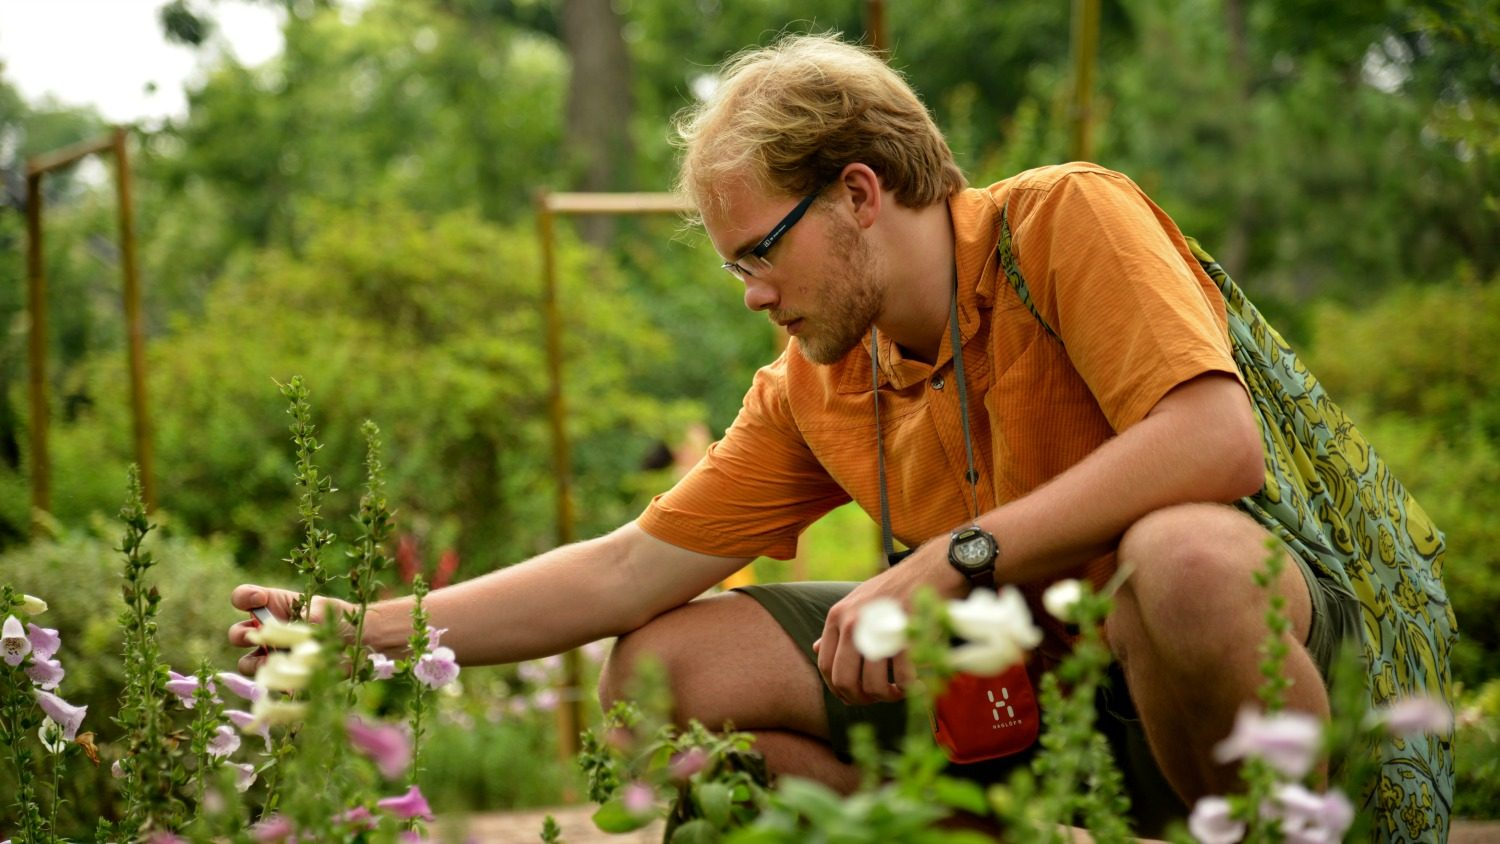 CALS student gets a closer look at plants in the Humble Administrator's Garden in Suzhou.